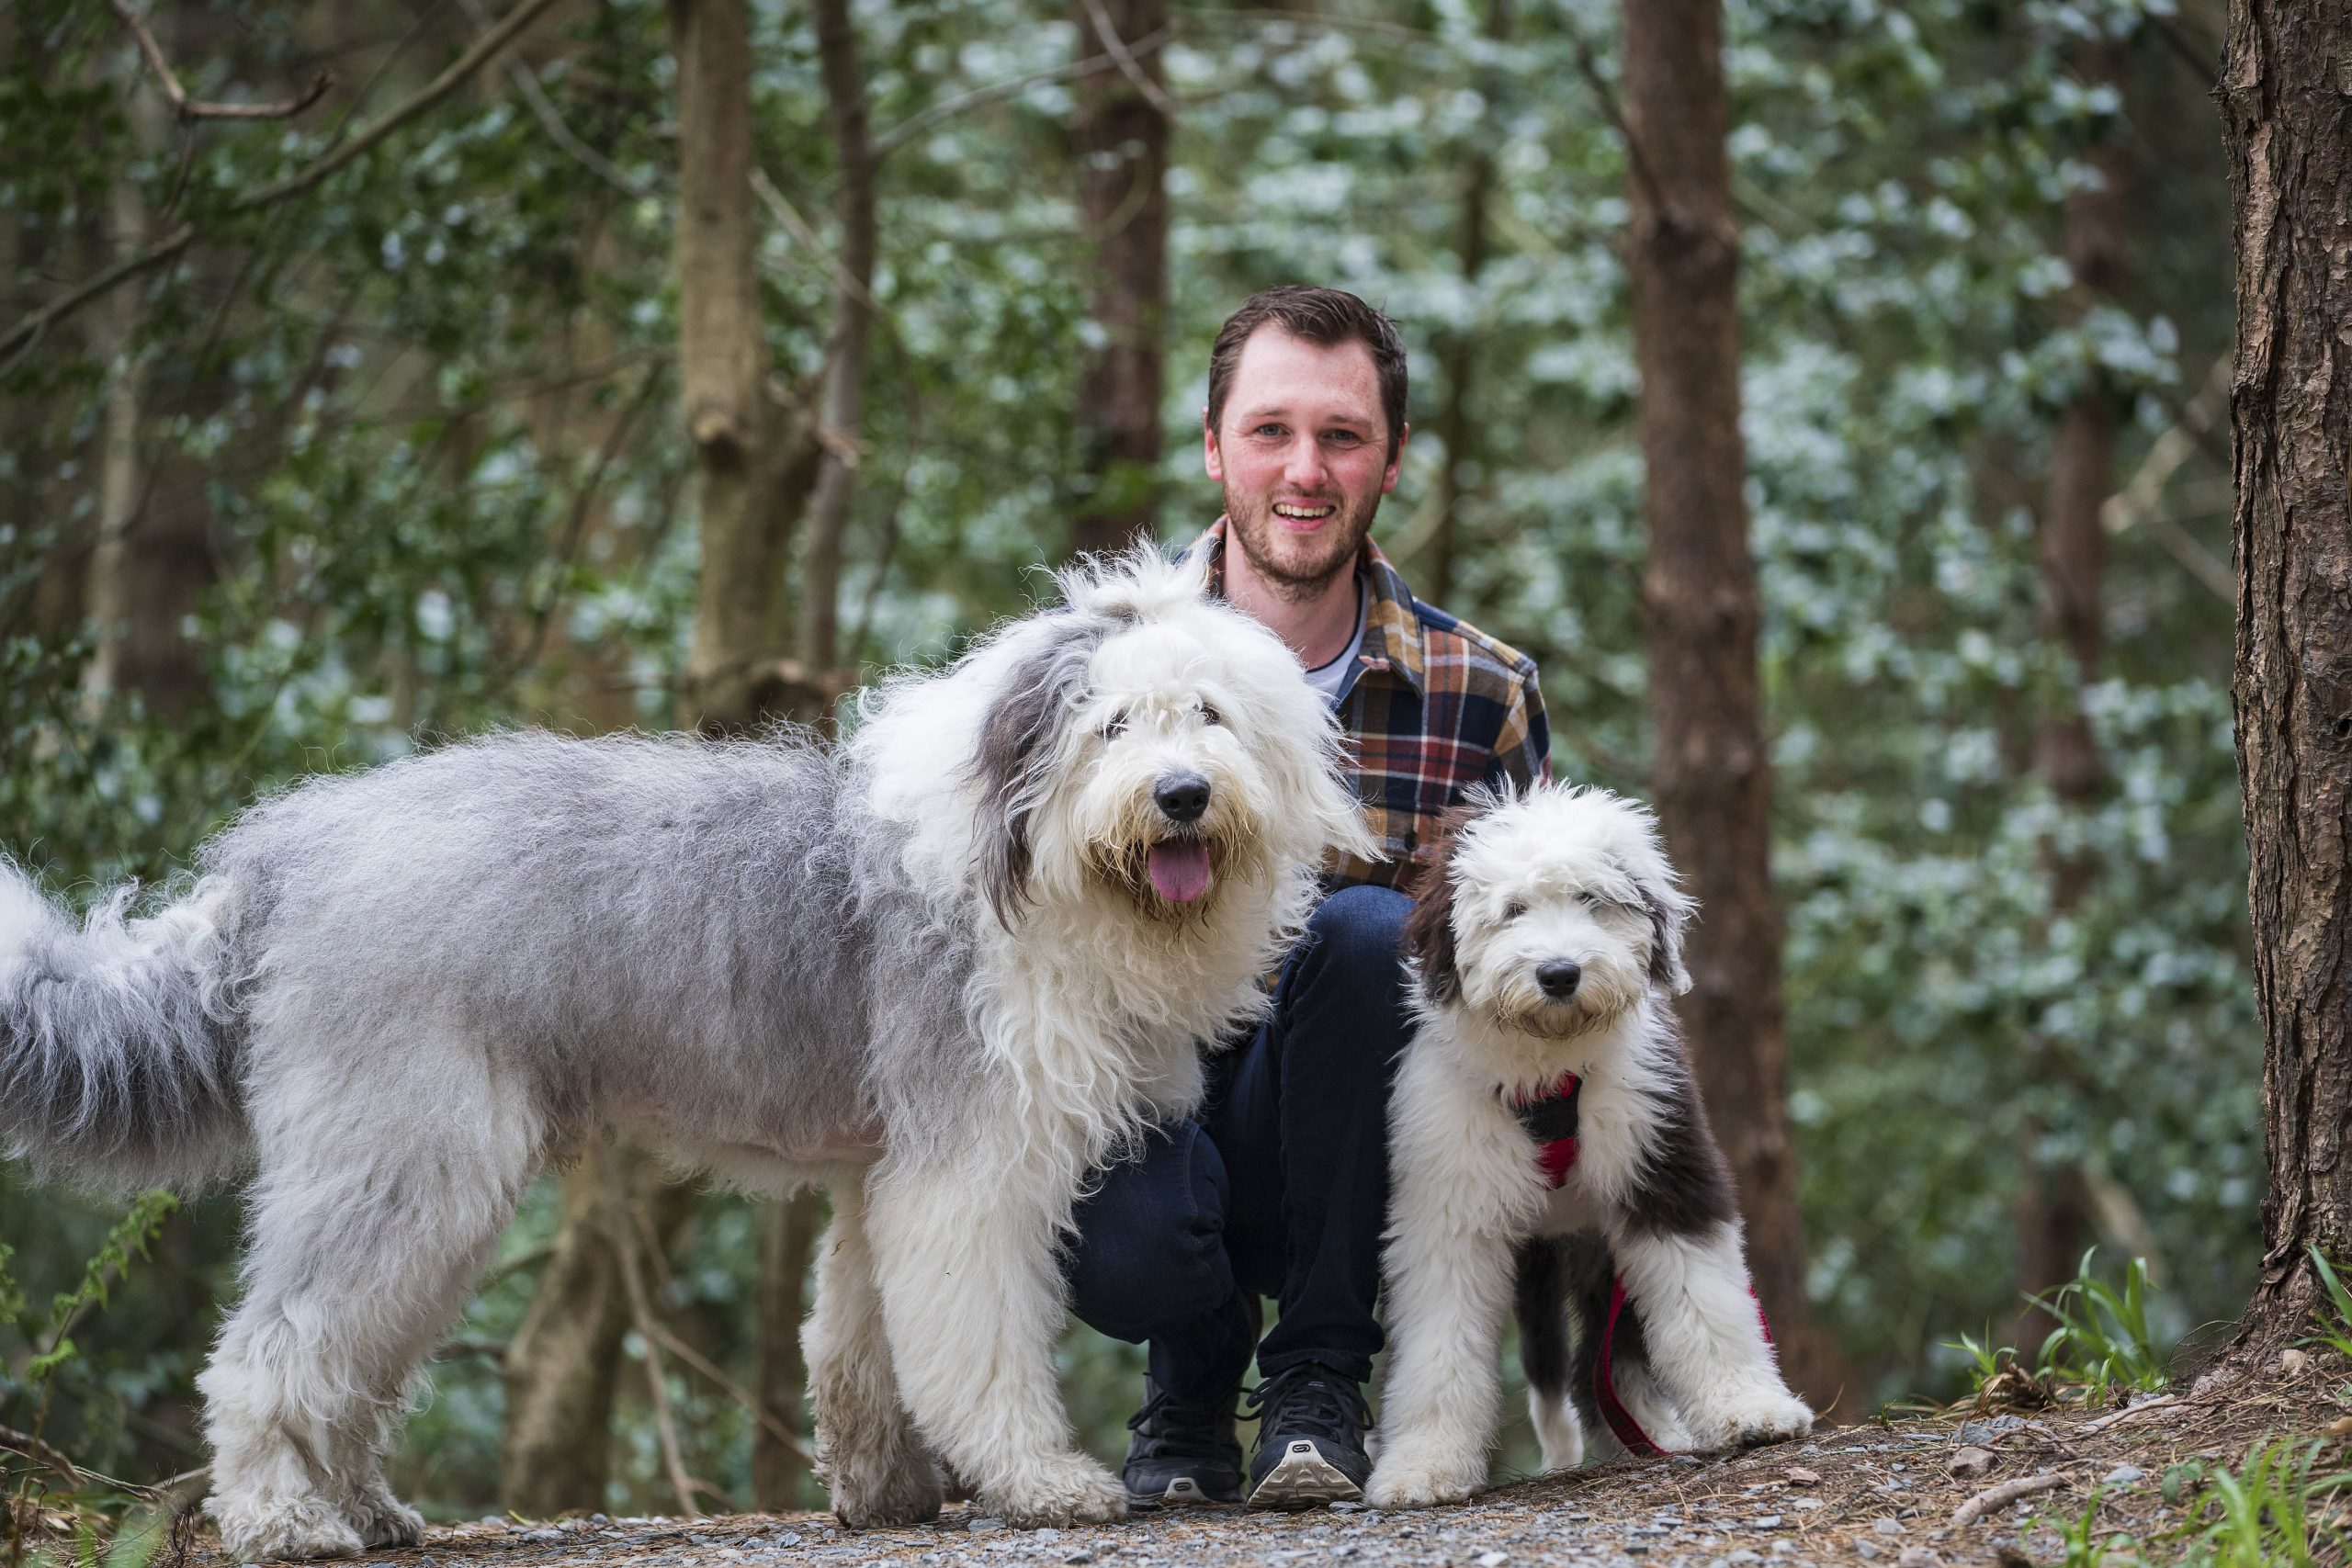 Man kneels in forest next to two old english sheepdogs